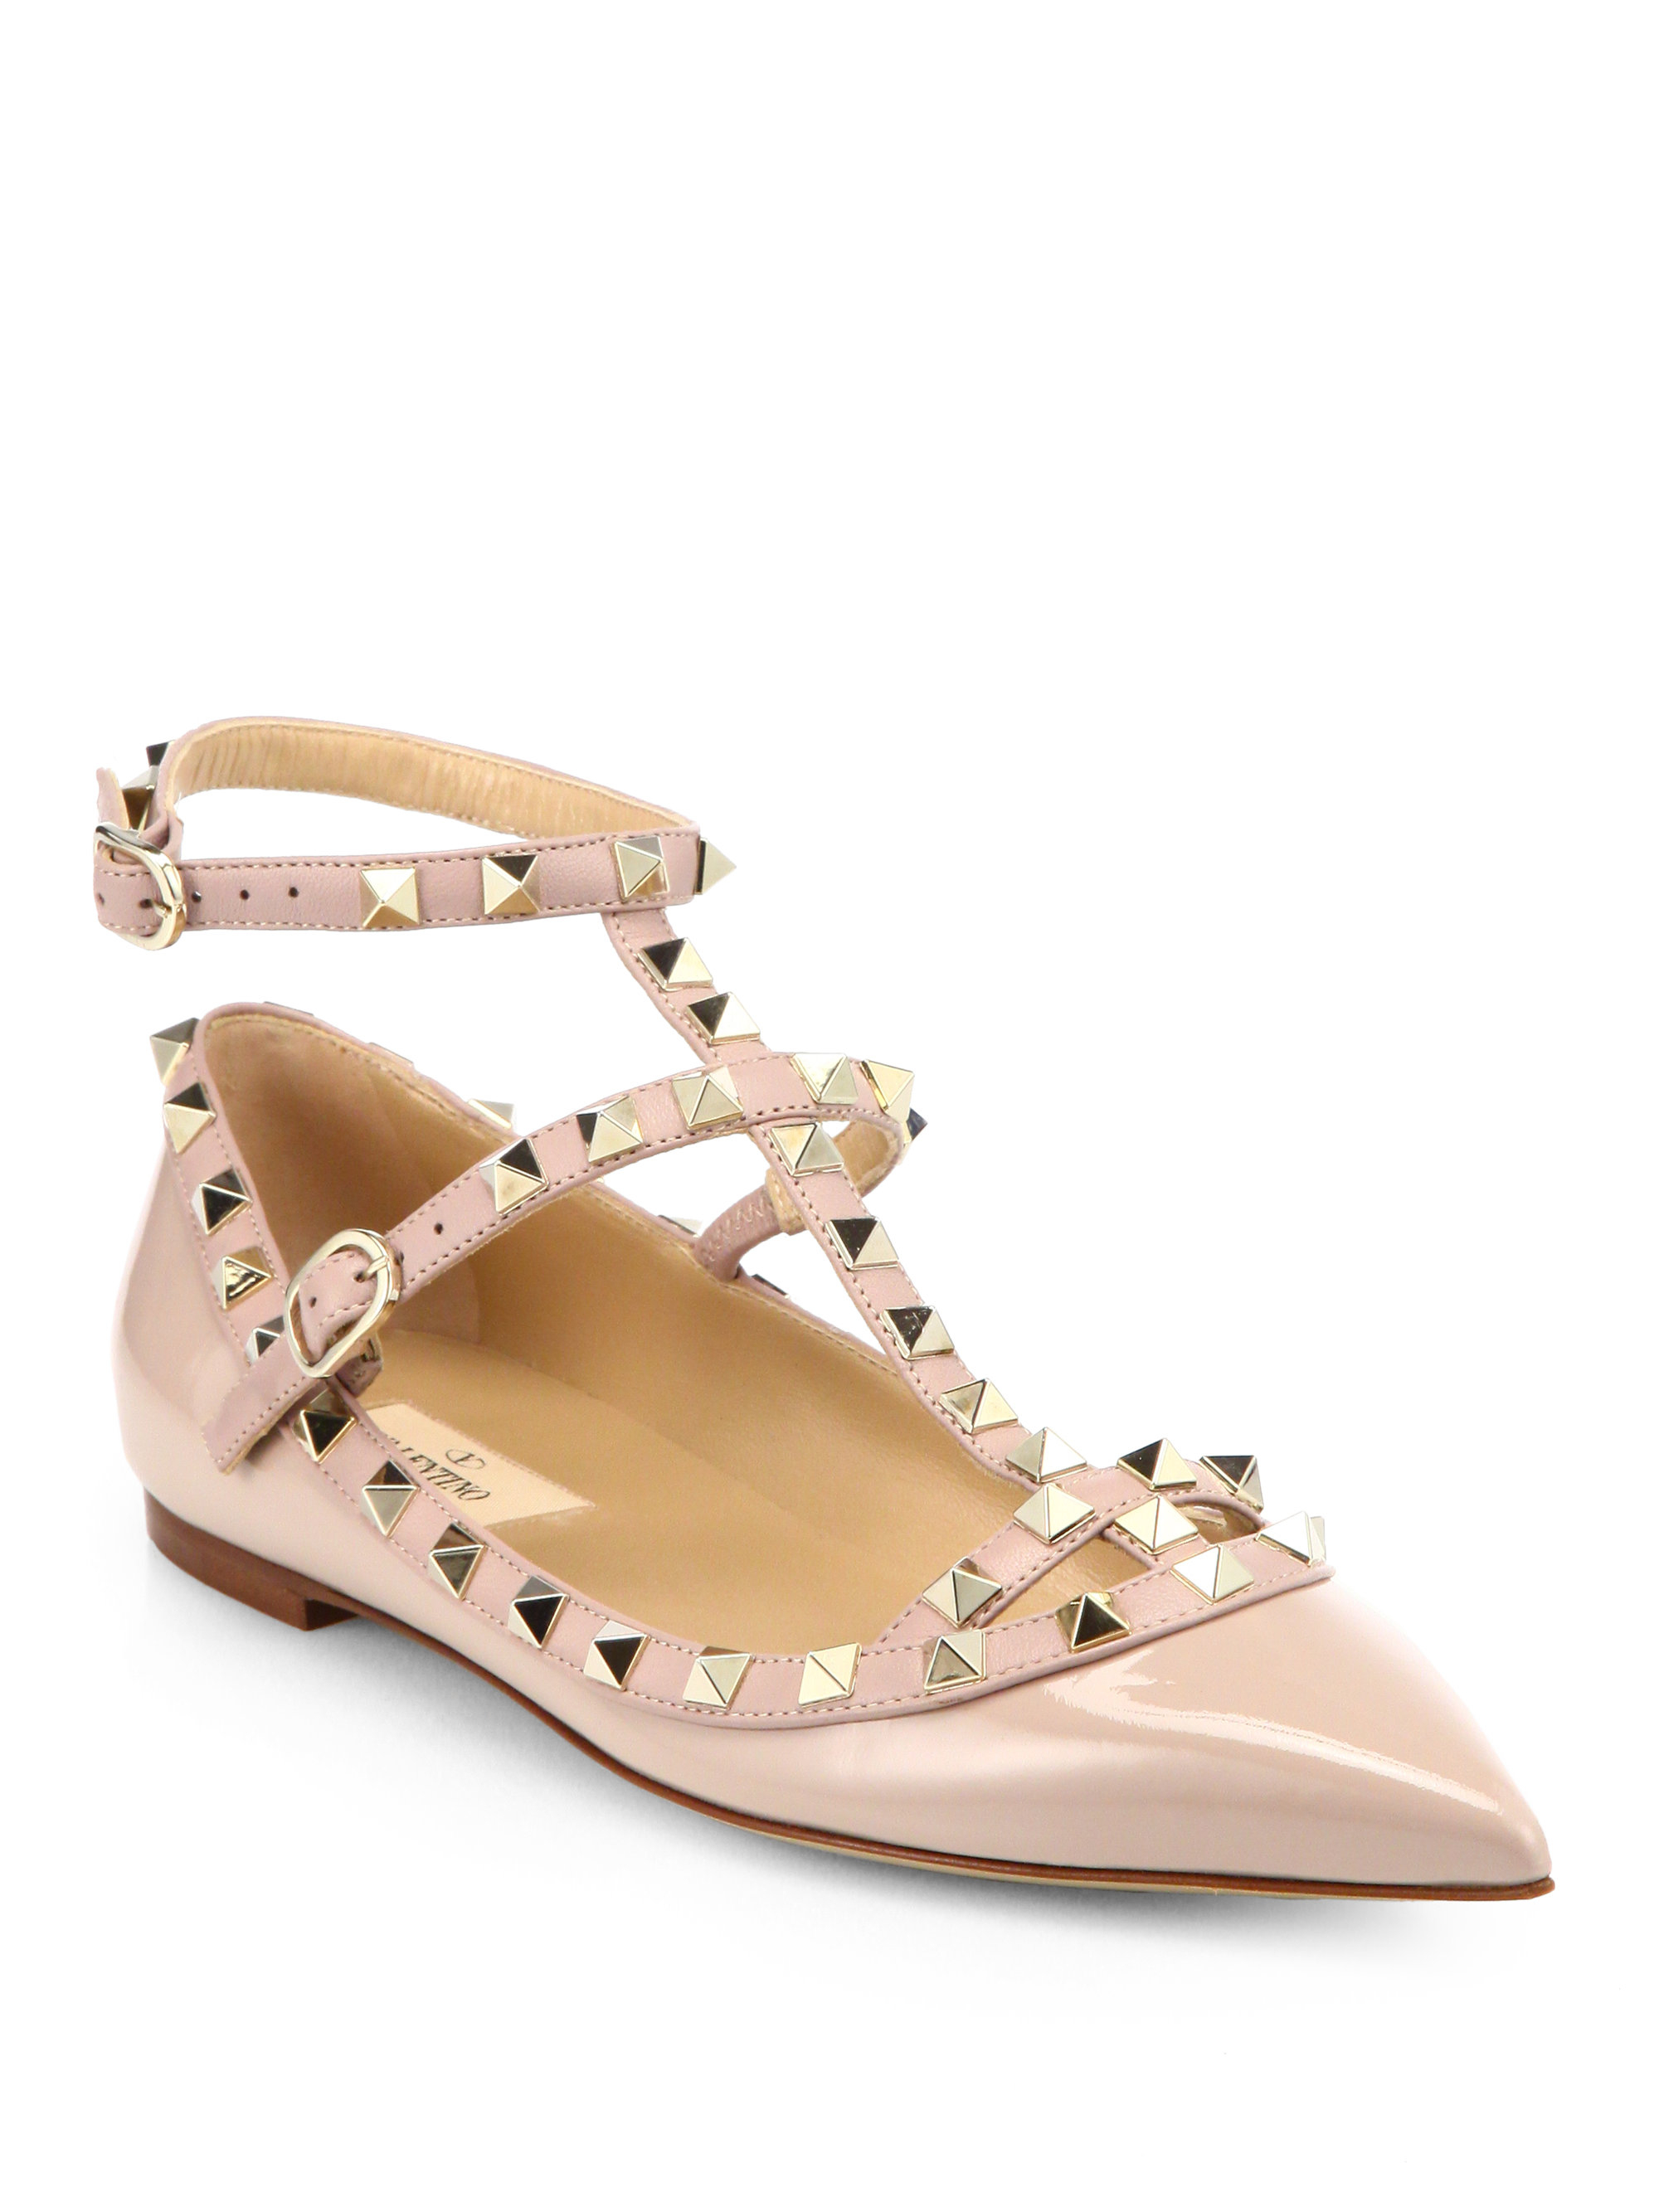 valentino rockstud patent leather cage flats in pink blush lyst. Black Bedroom Furniture Sets. Home Design Ideas